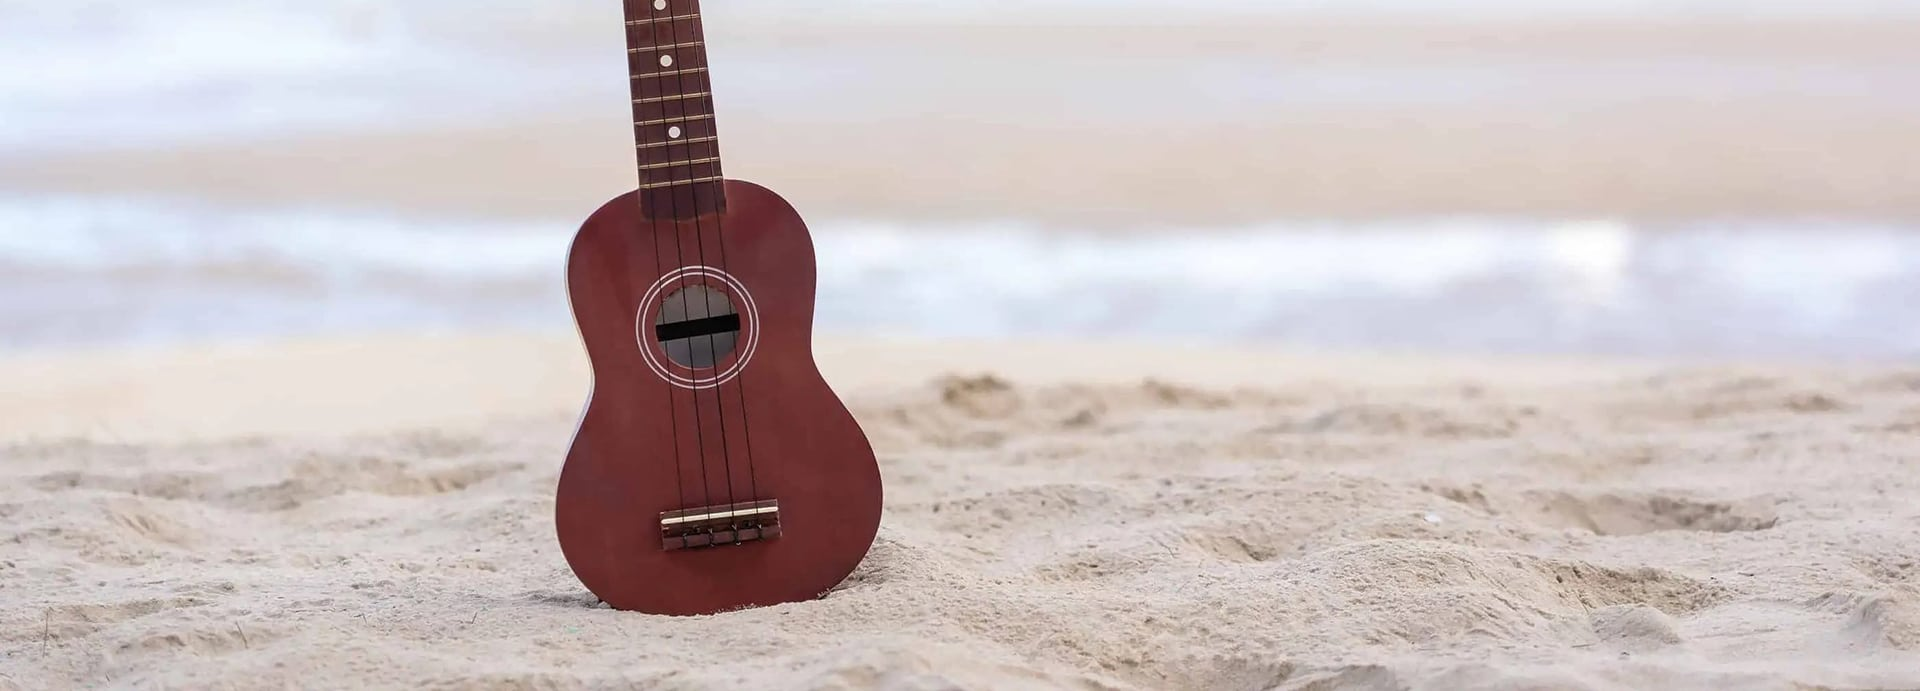 How to Play Ukulele - Ultimate Beginner's Guide and Tips